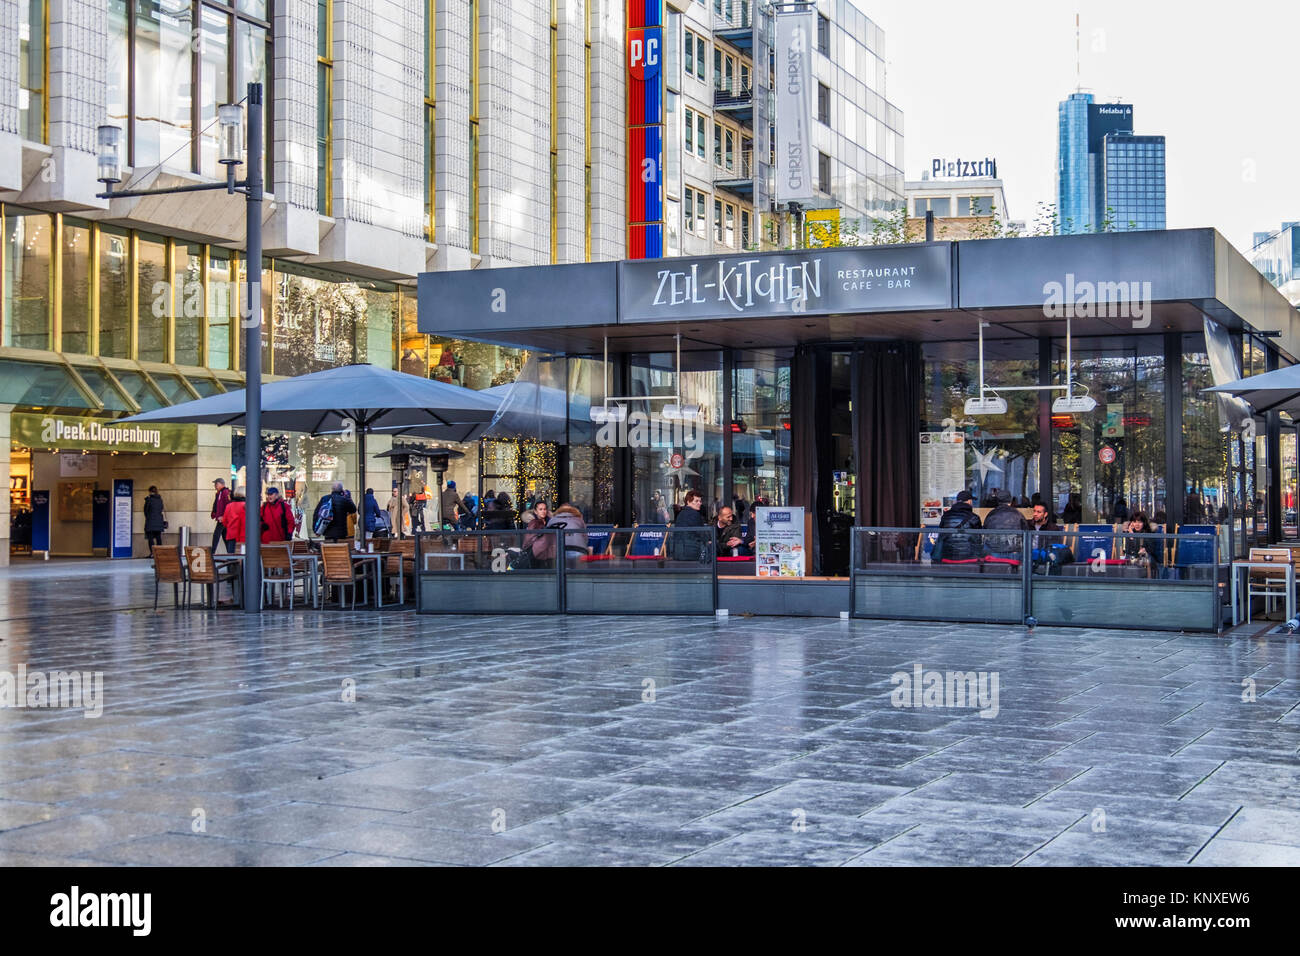 Frankfurt,Germany. Zeil Kitchen cafe, bar & restaurant with outdoor dining area on Zeil Shopping promenade, - Stock Image